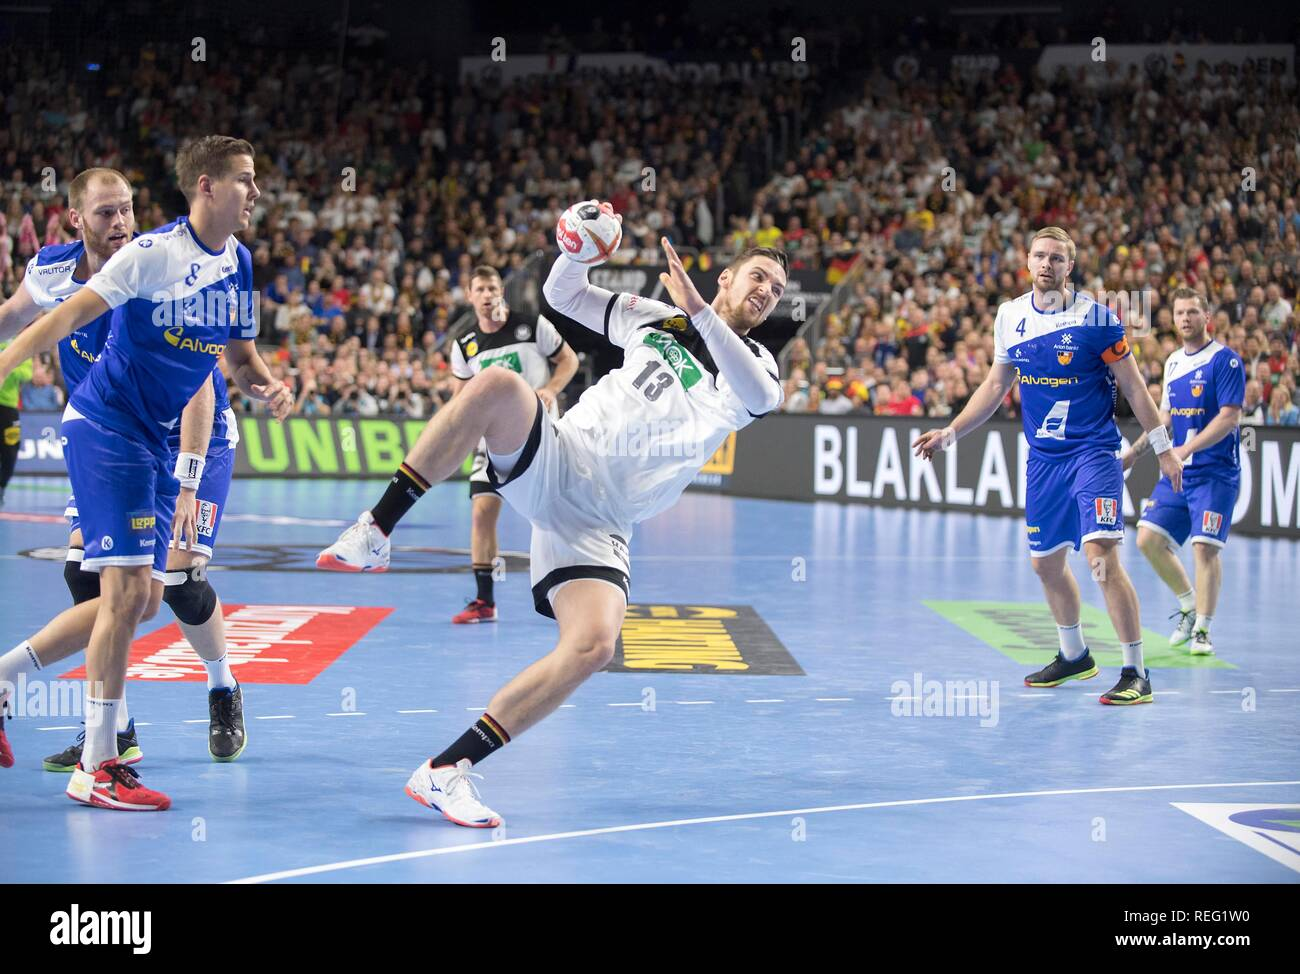 Cologne, Deutschland. 19th Jan, 2019. Sprungwurd Hendrik PEKELER (GER), action, goal throw, main round Group I, Germany (GER) - Iceland (ISL) 24 - 19, on 19.01.2019 in Koeln/Germany. Handball World Cup 2019, from 10.01. - 27.01.2019 in Germany/Denmark.   usage worldwide Credit: dpa/Alamy Live News Stock Photo